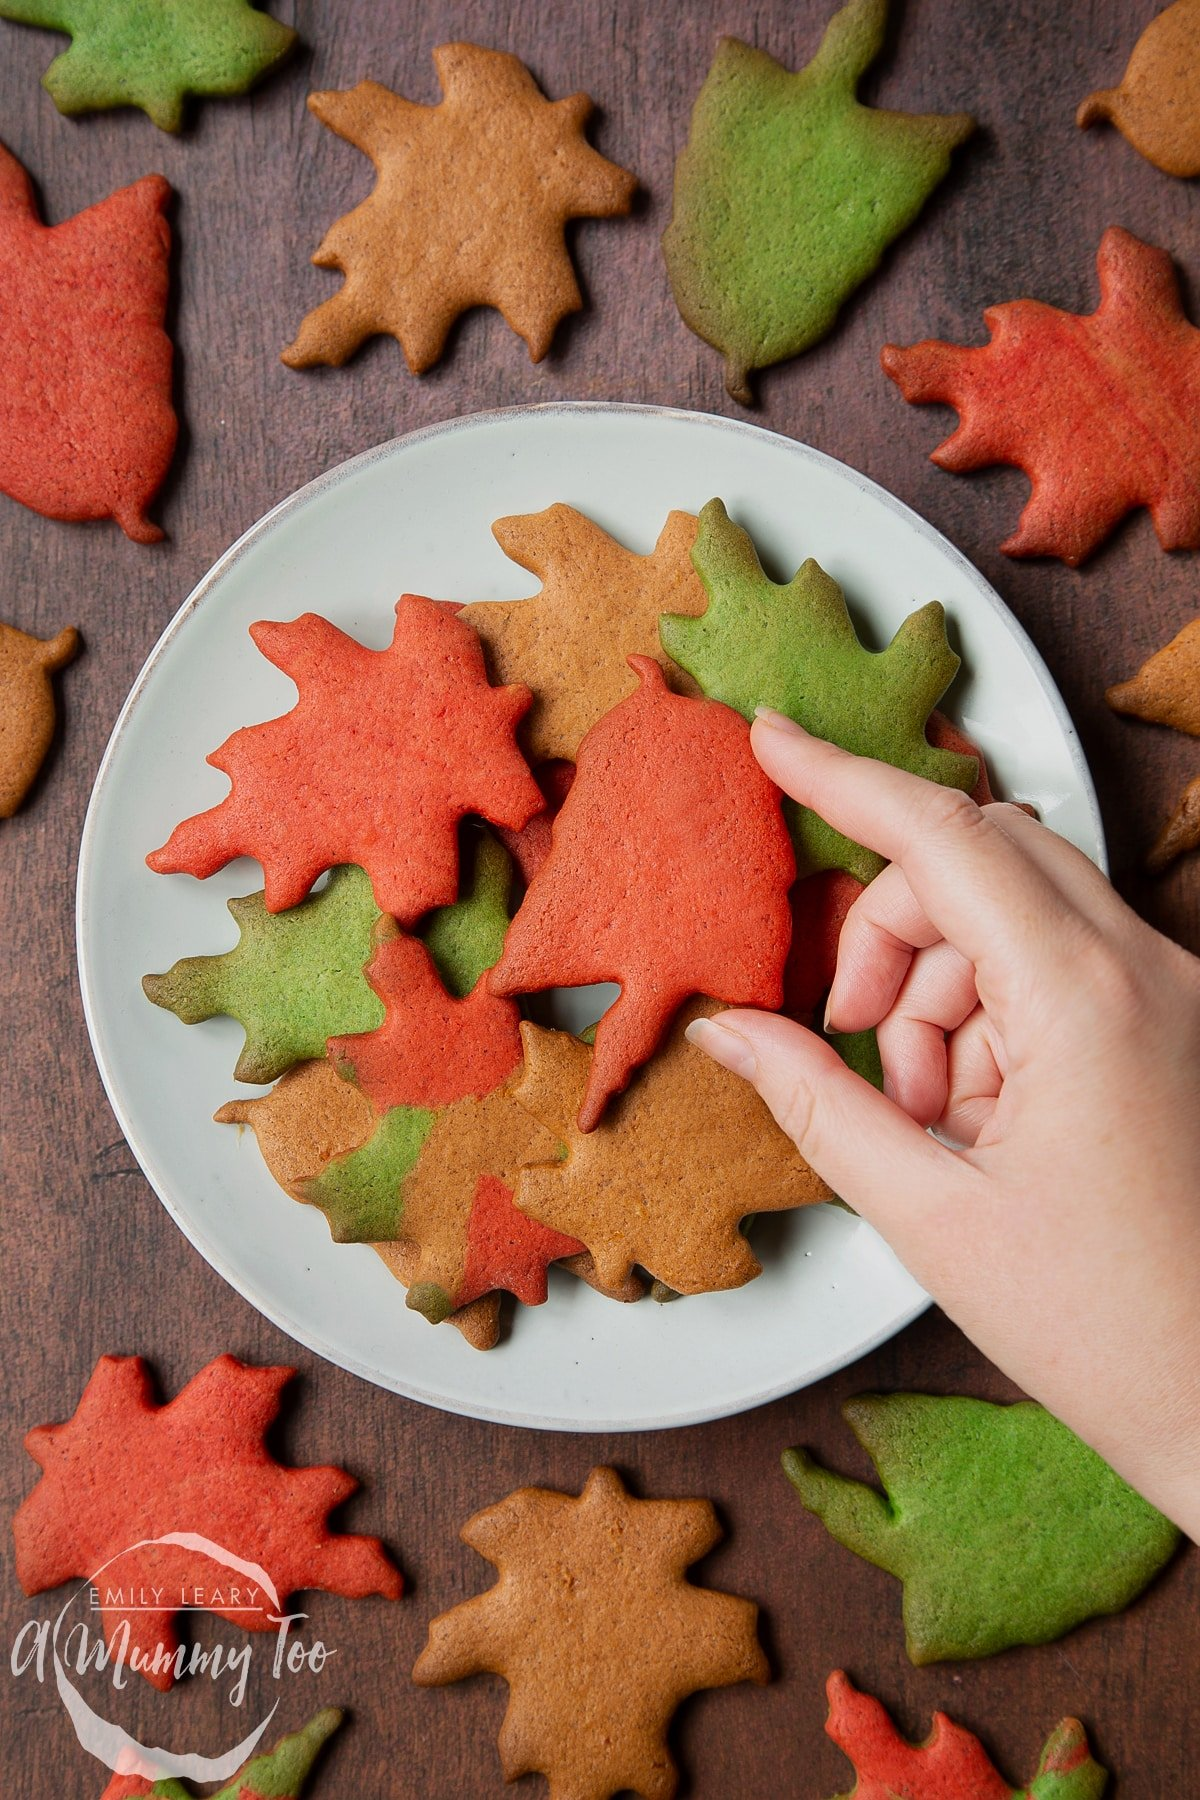 A plate of colourful red, green and brown autumn cookies cut into the shapes of autumn leaves. A hands reaches for a red one.